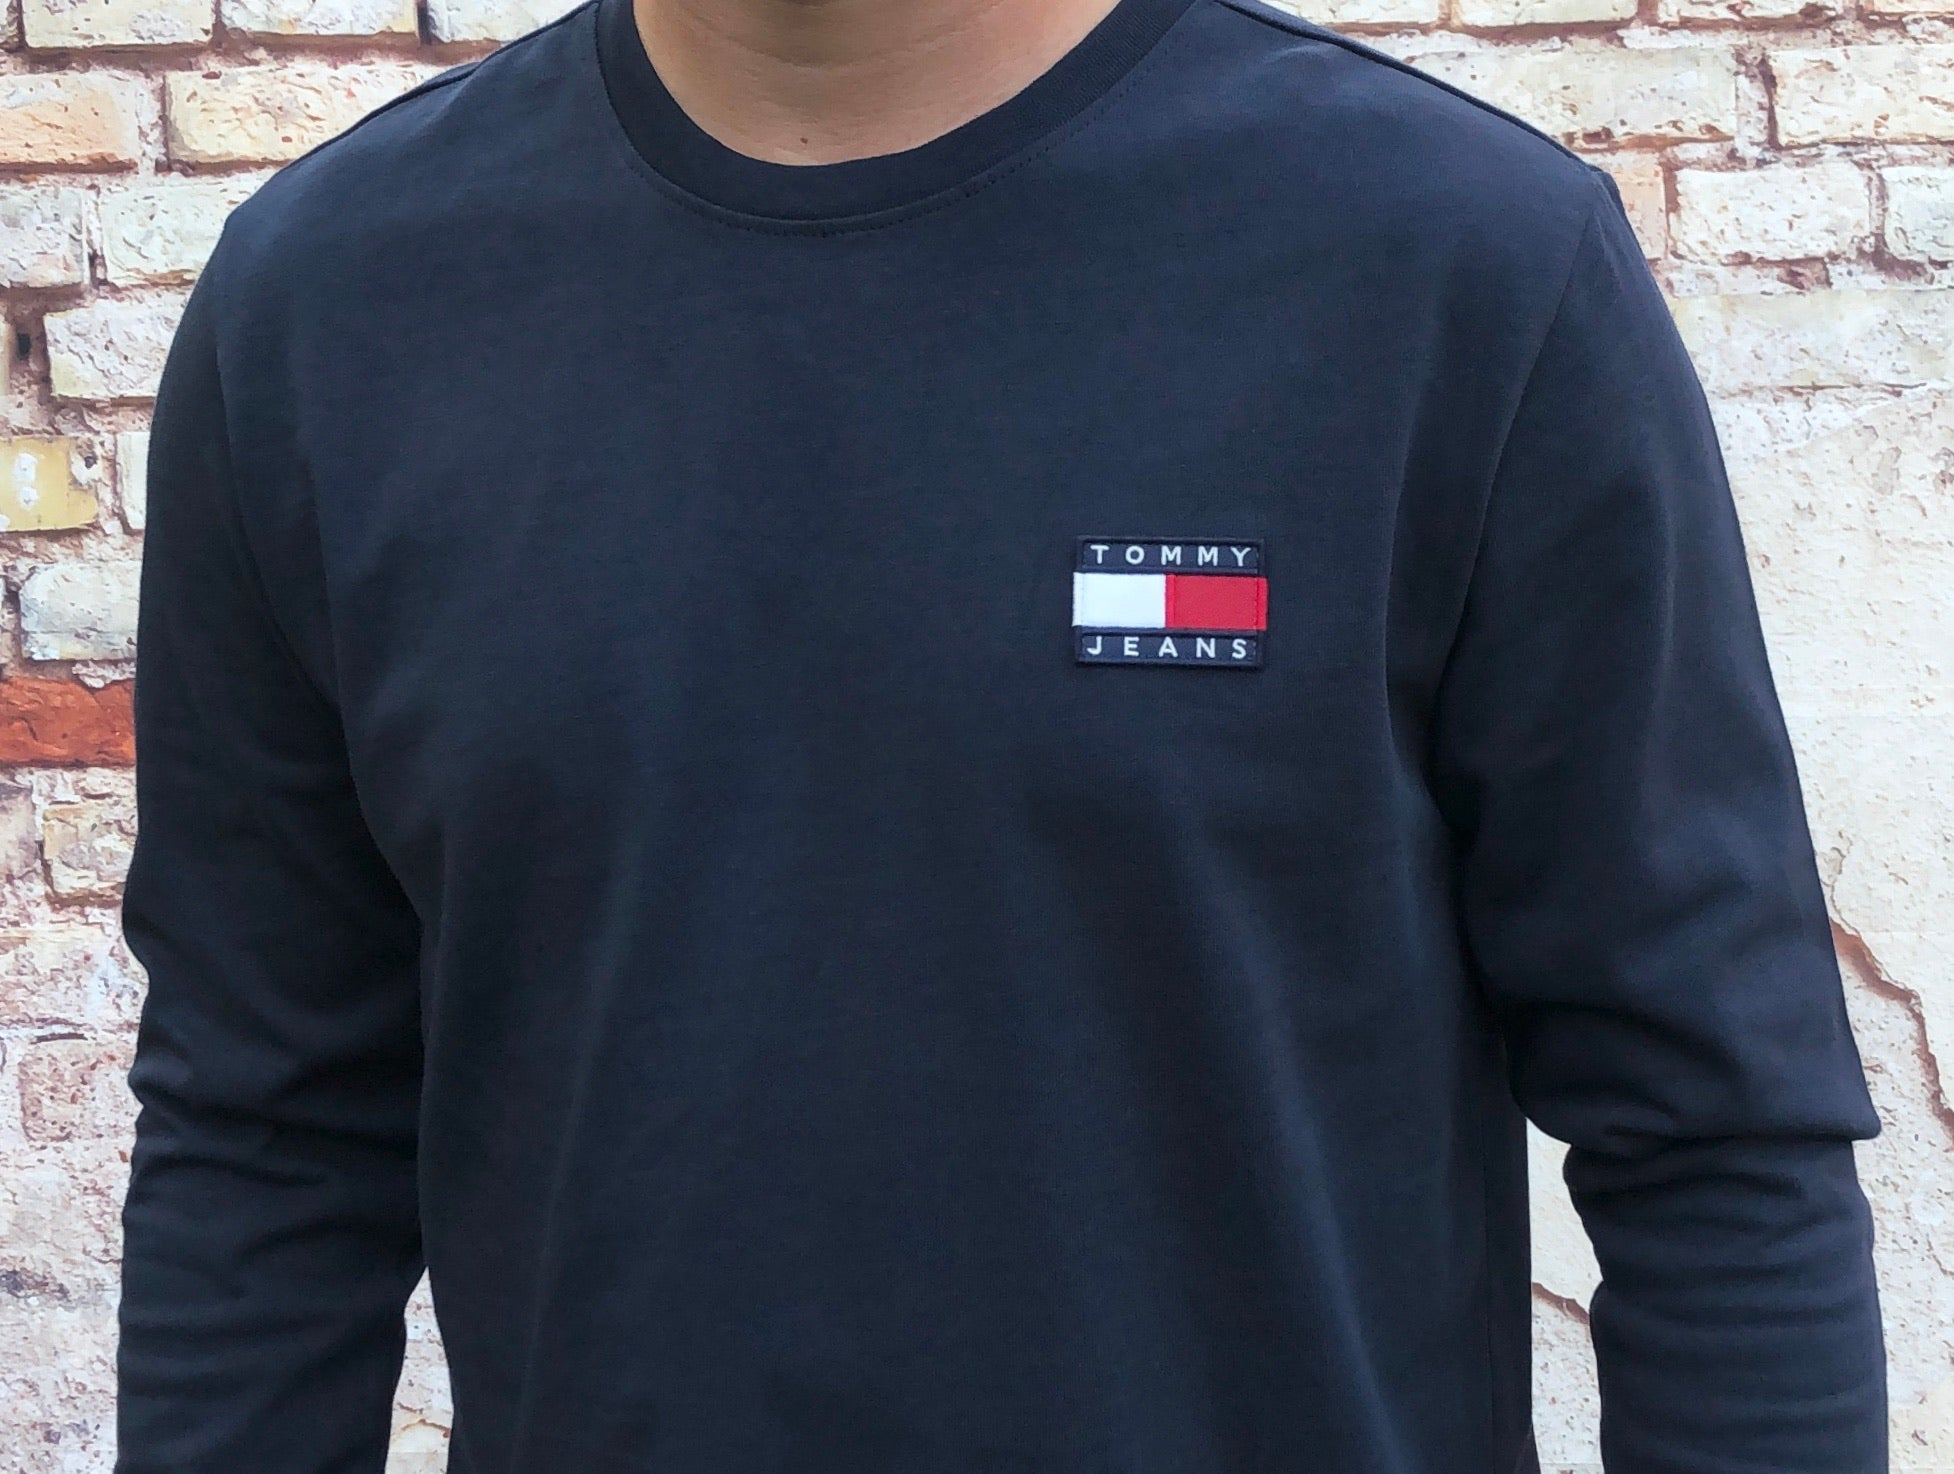 Navy, Tommy Hilfiger, long-sleeved tee shirt, with small, embroidered logo on left of chest